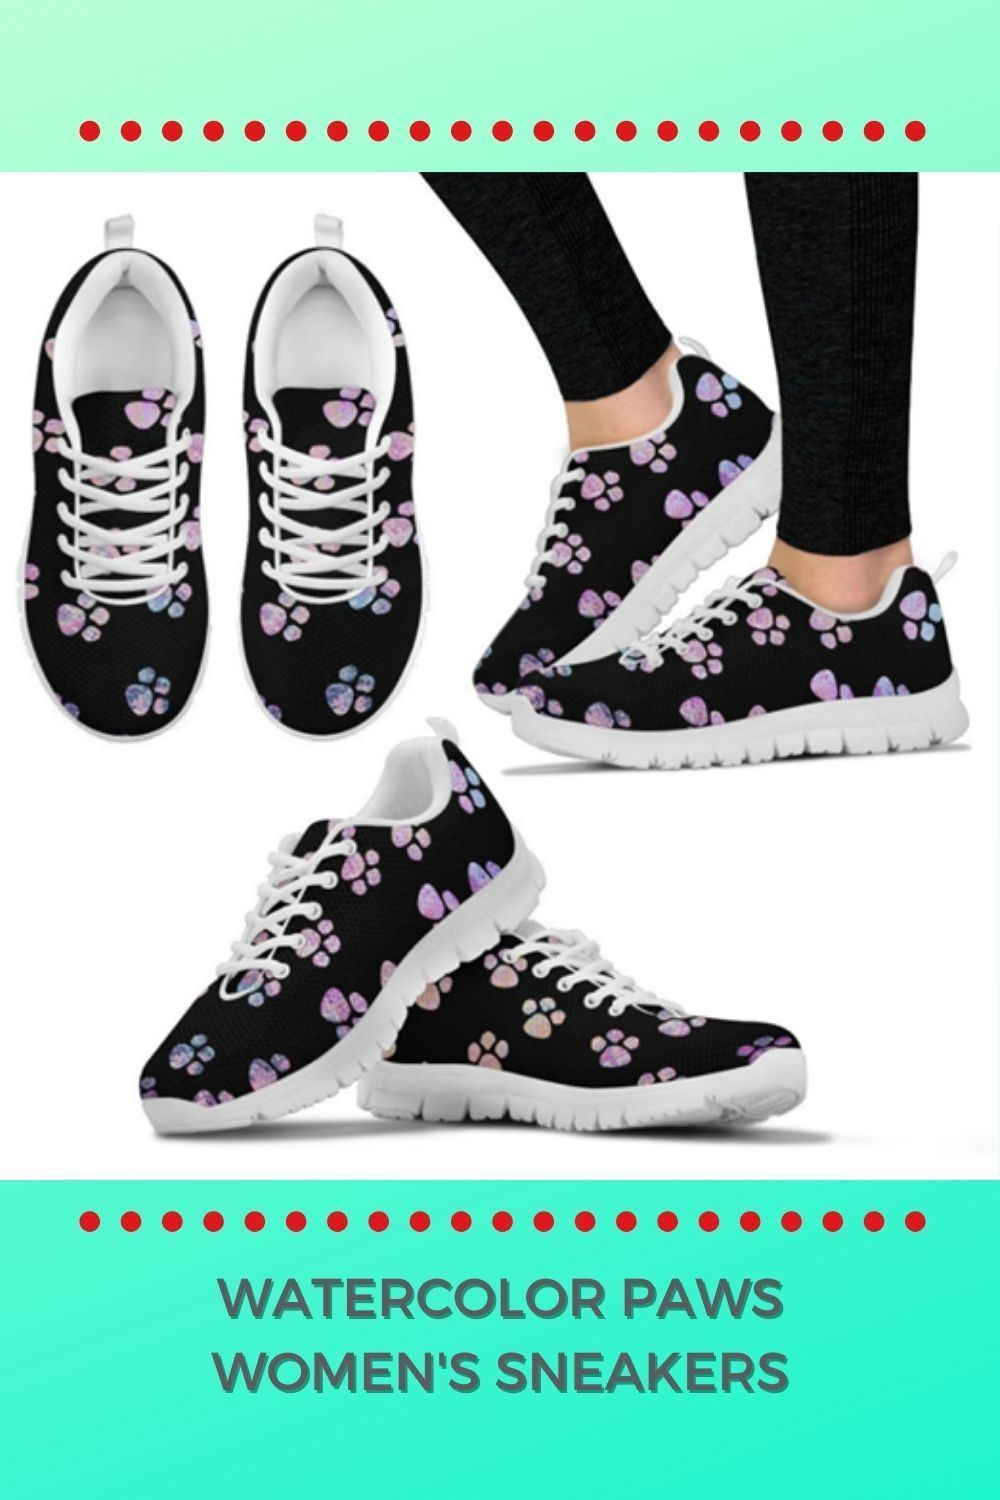 Sneakers for Veterinary Professionals